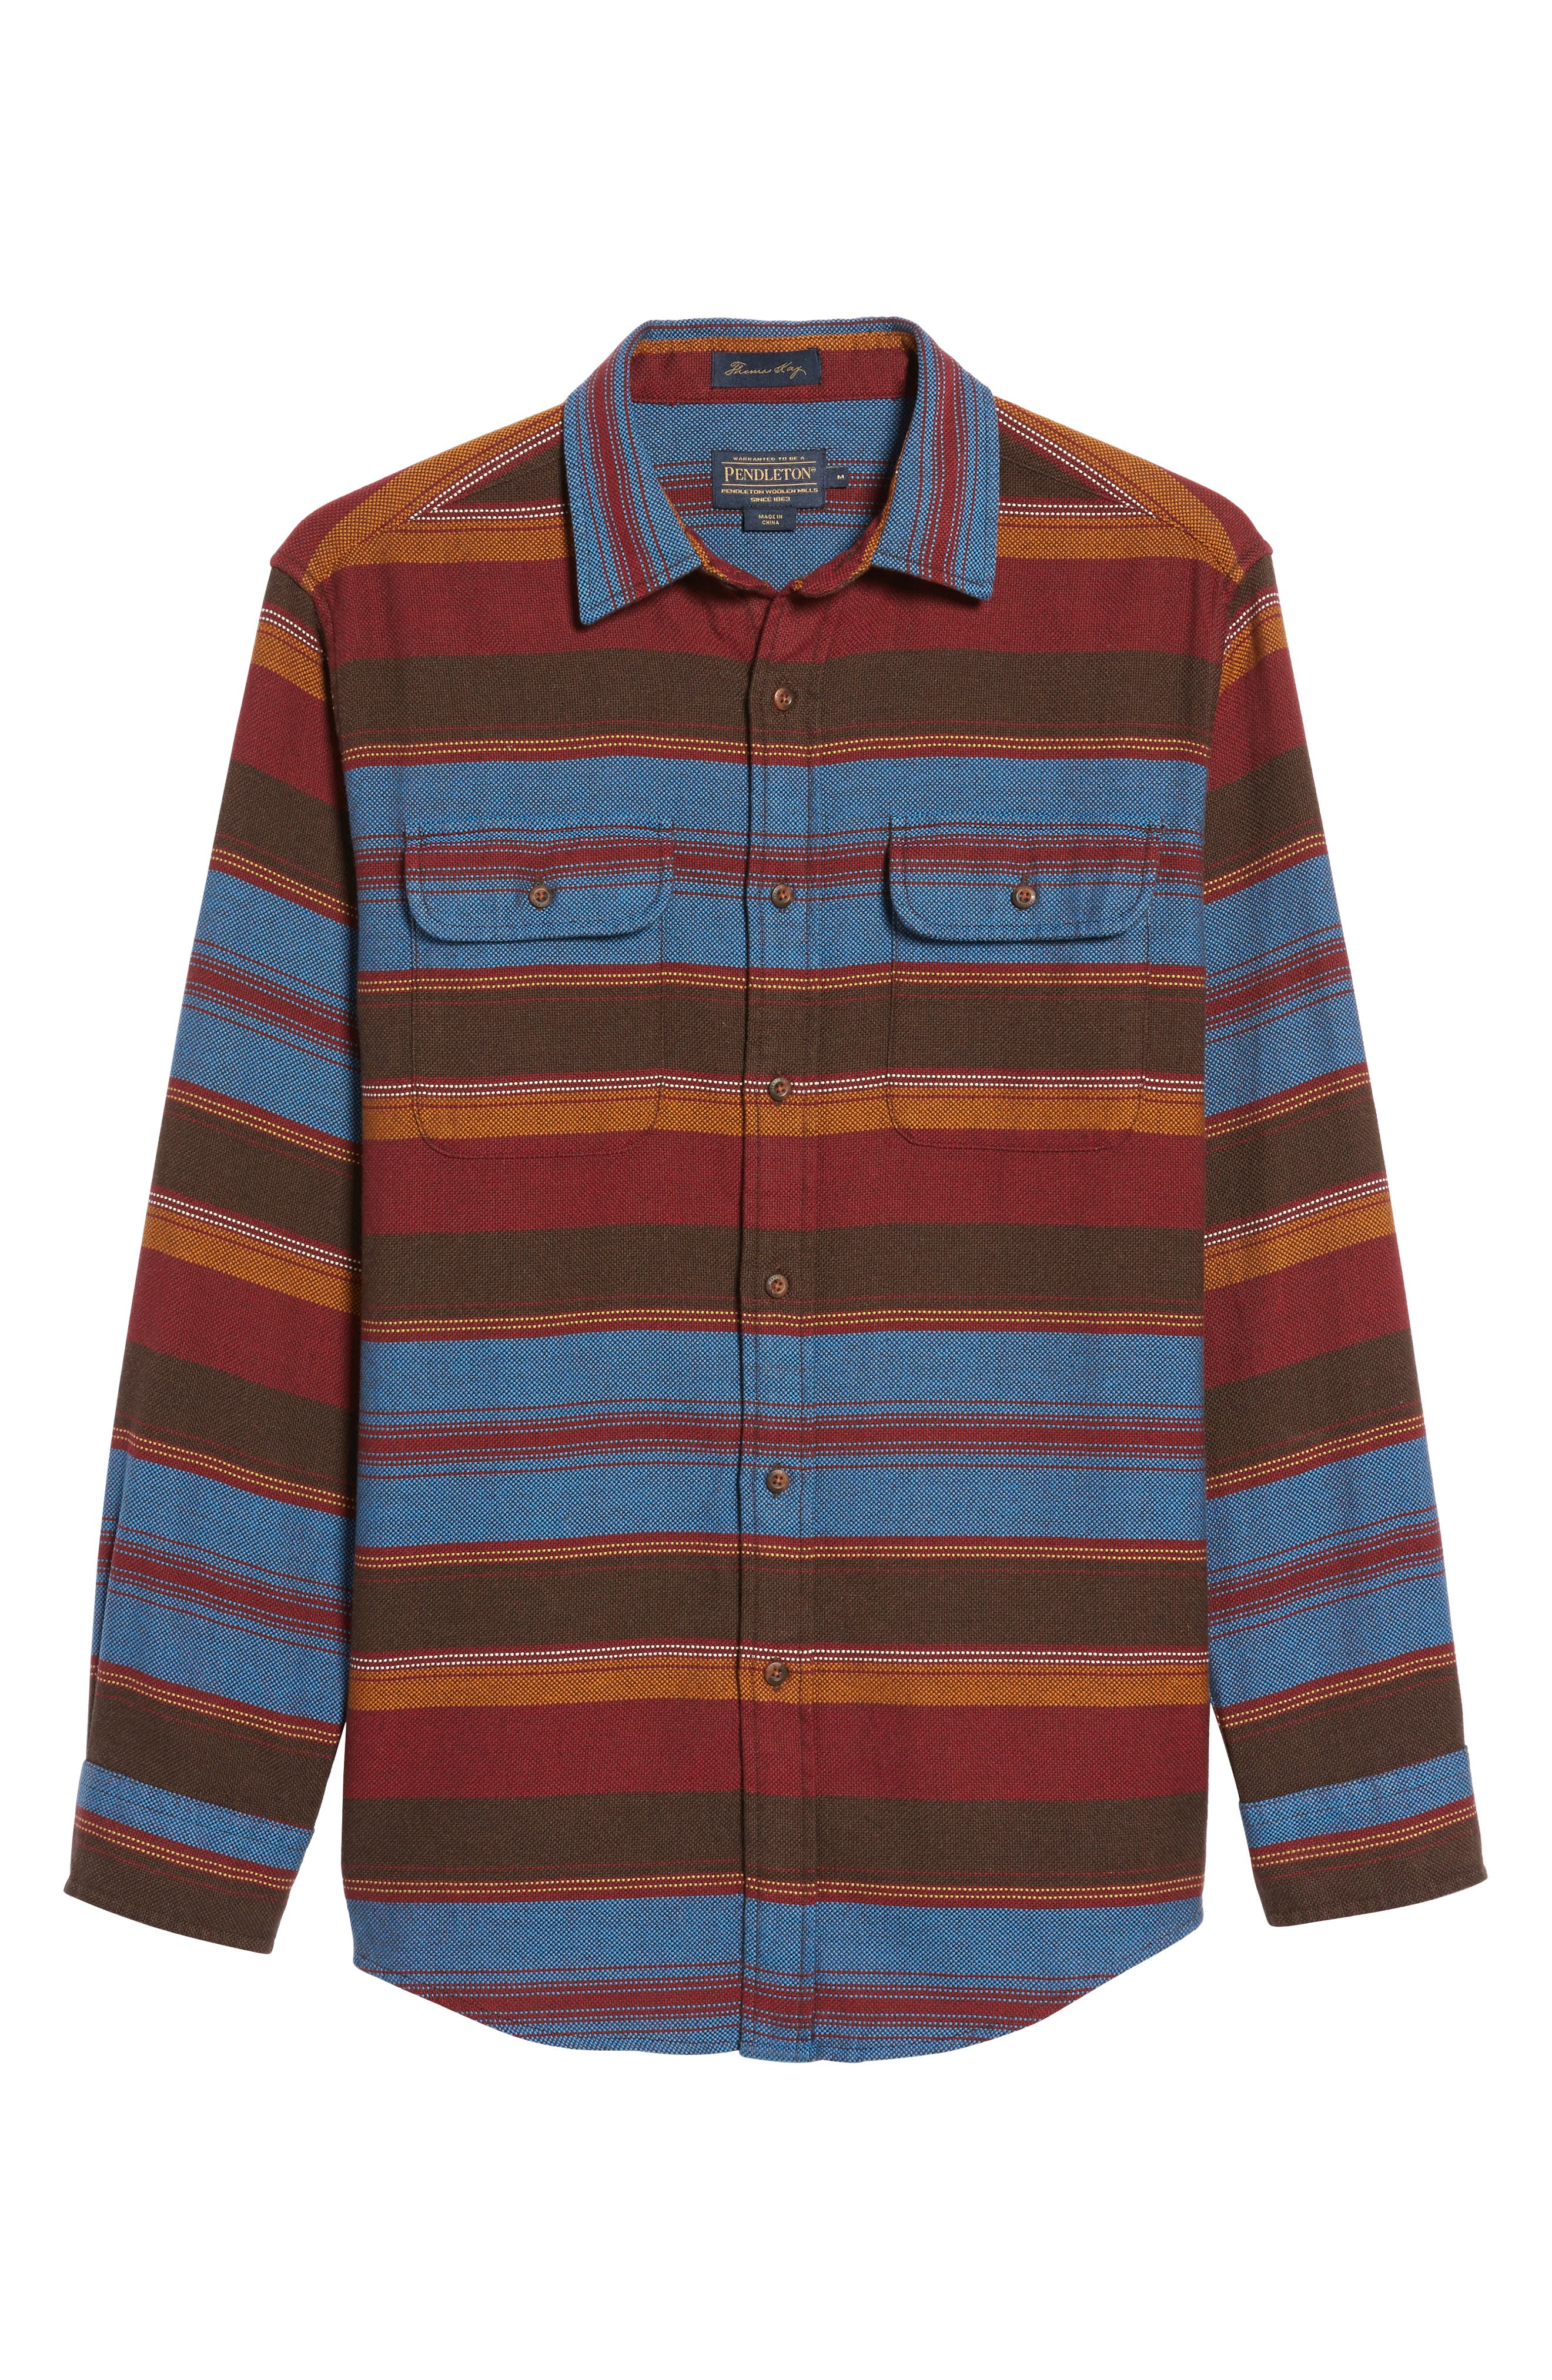 Camber Striped Sport Shirt,                             Alternate thumbnail 6, color,                             206